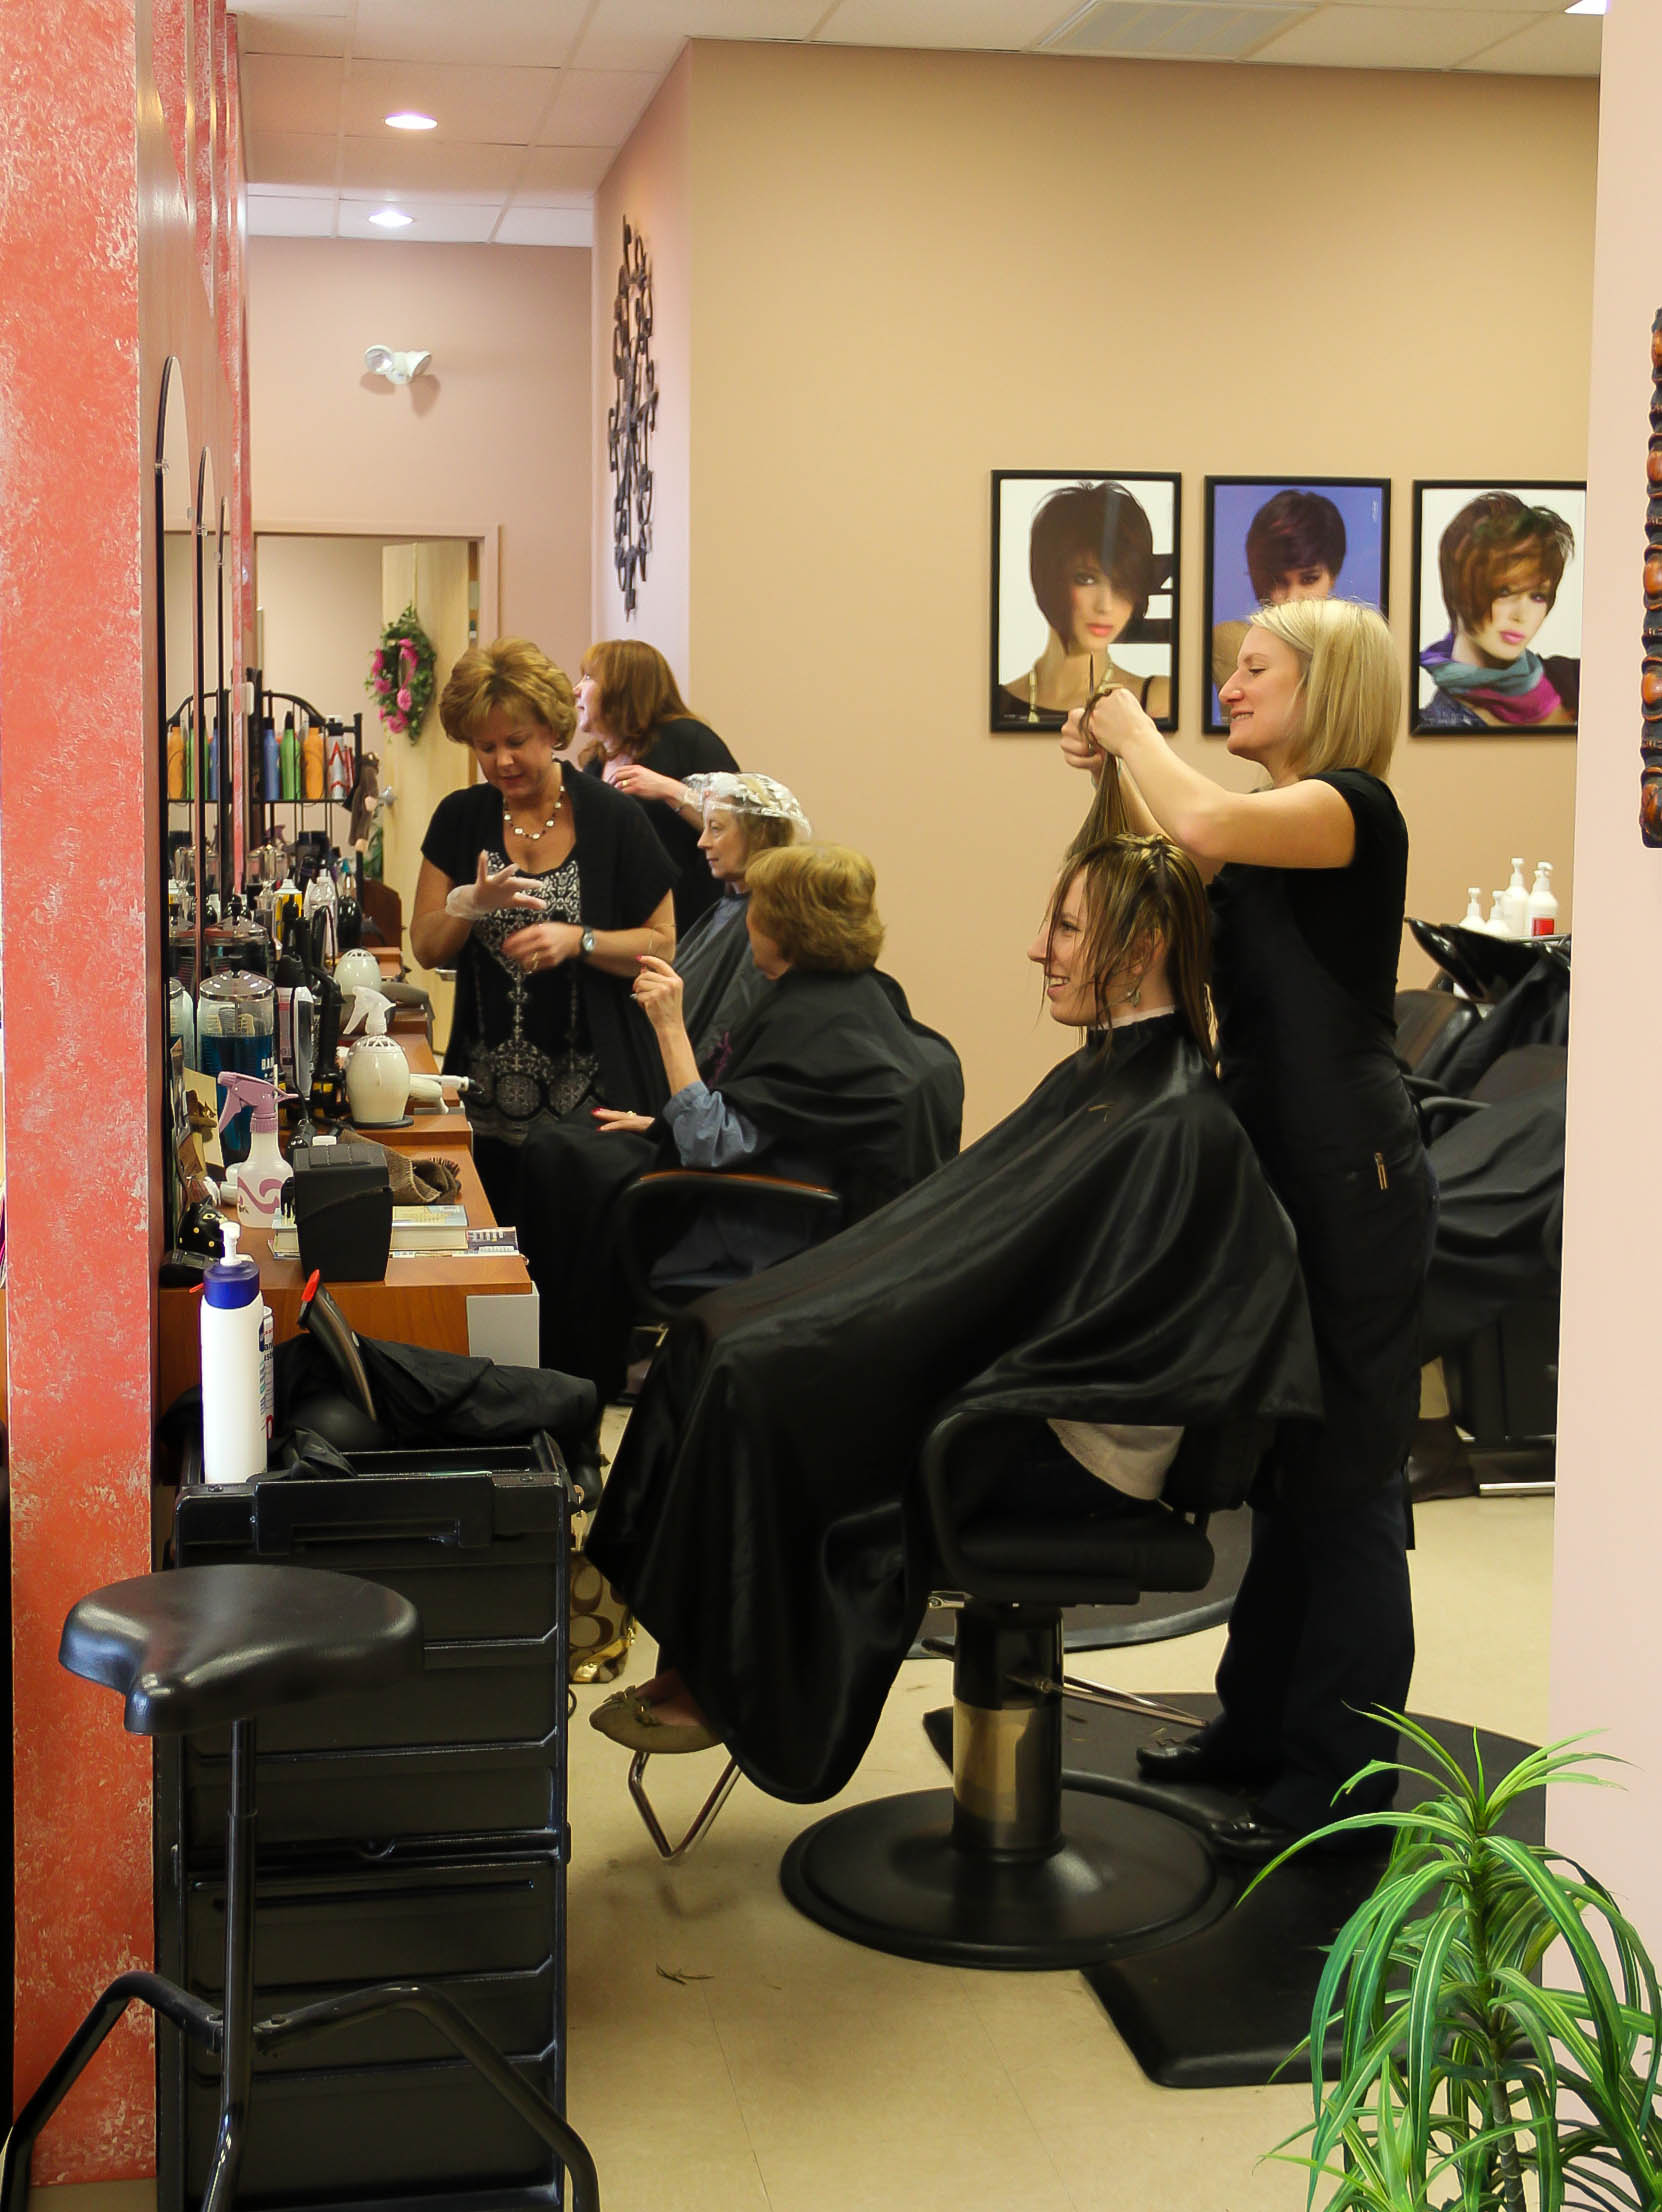 Services archive visions hair and nail salon for About salon services